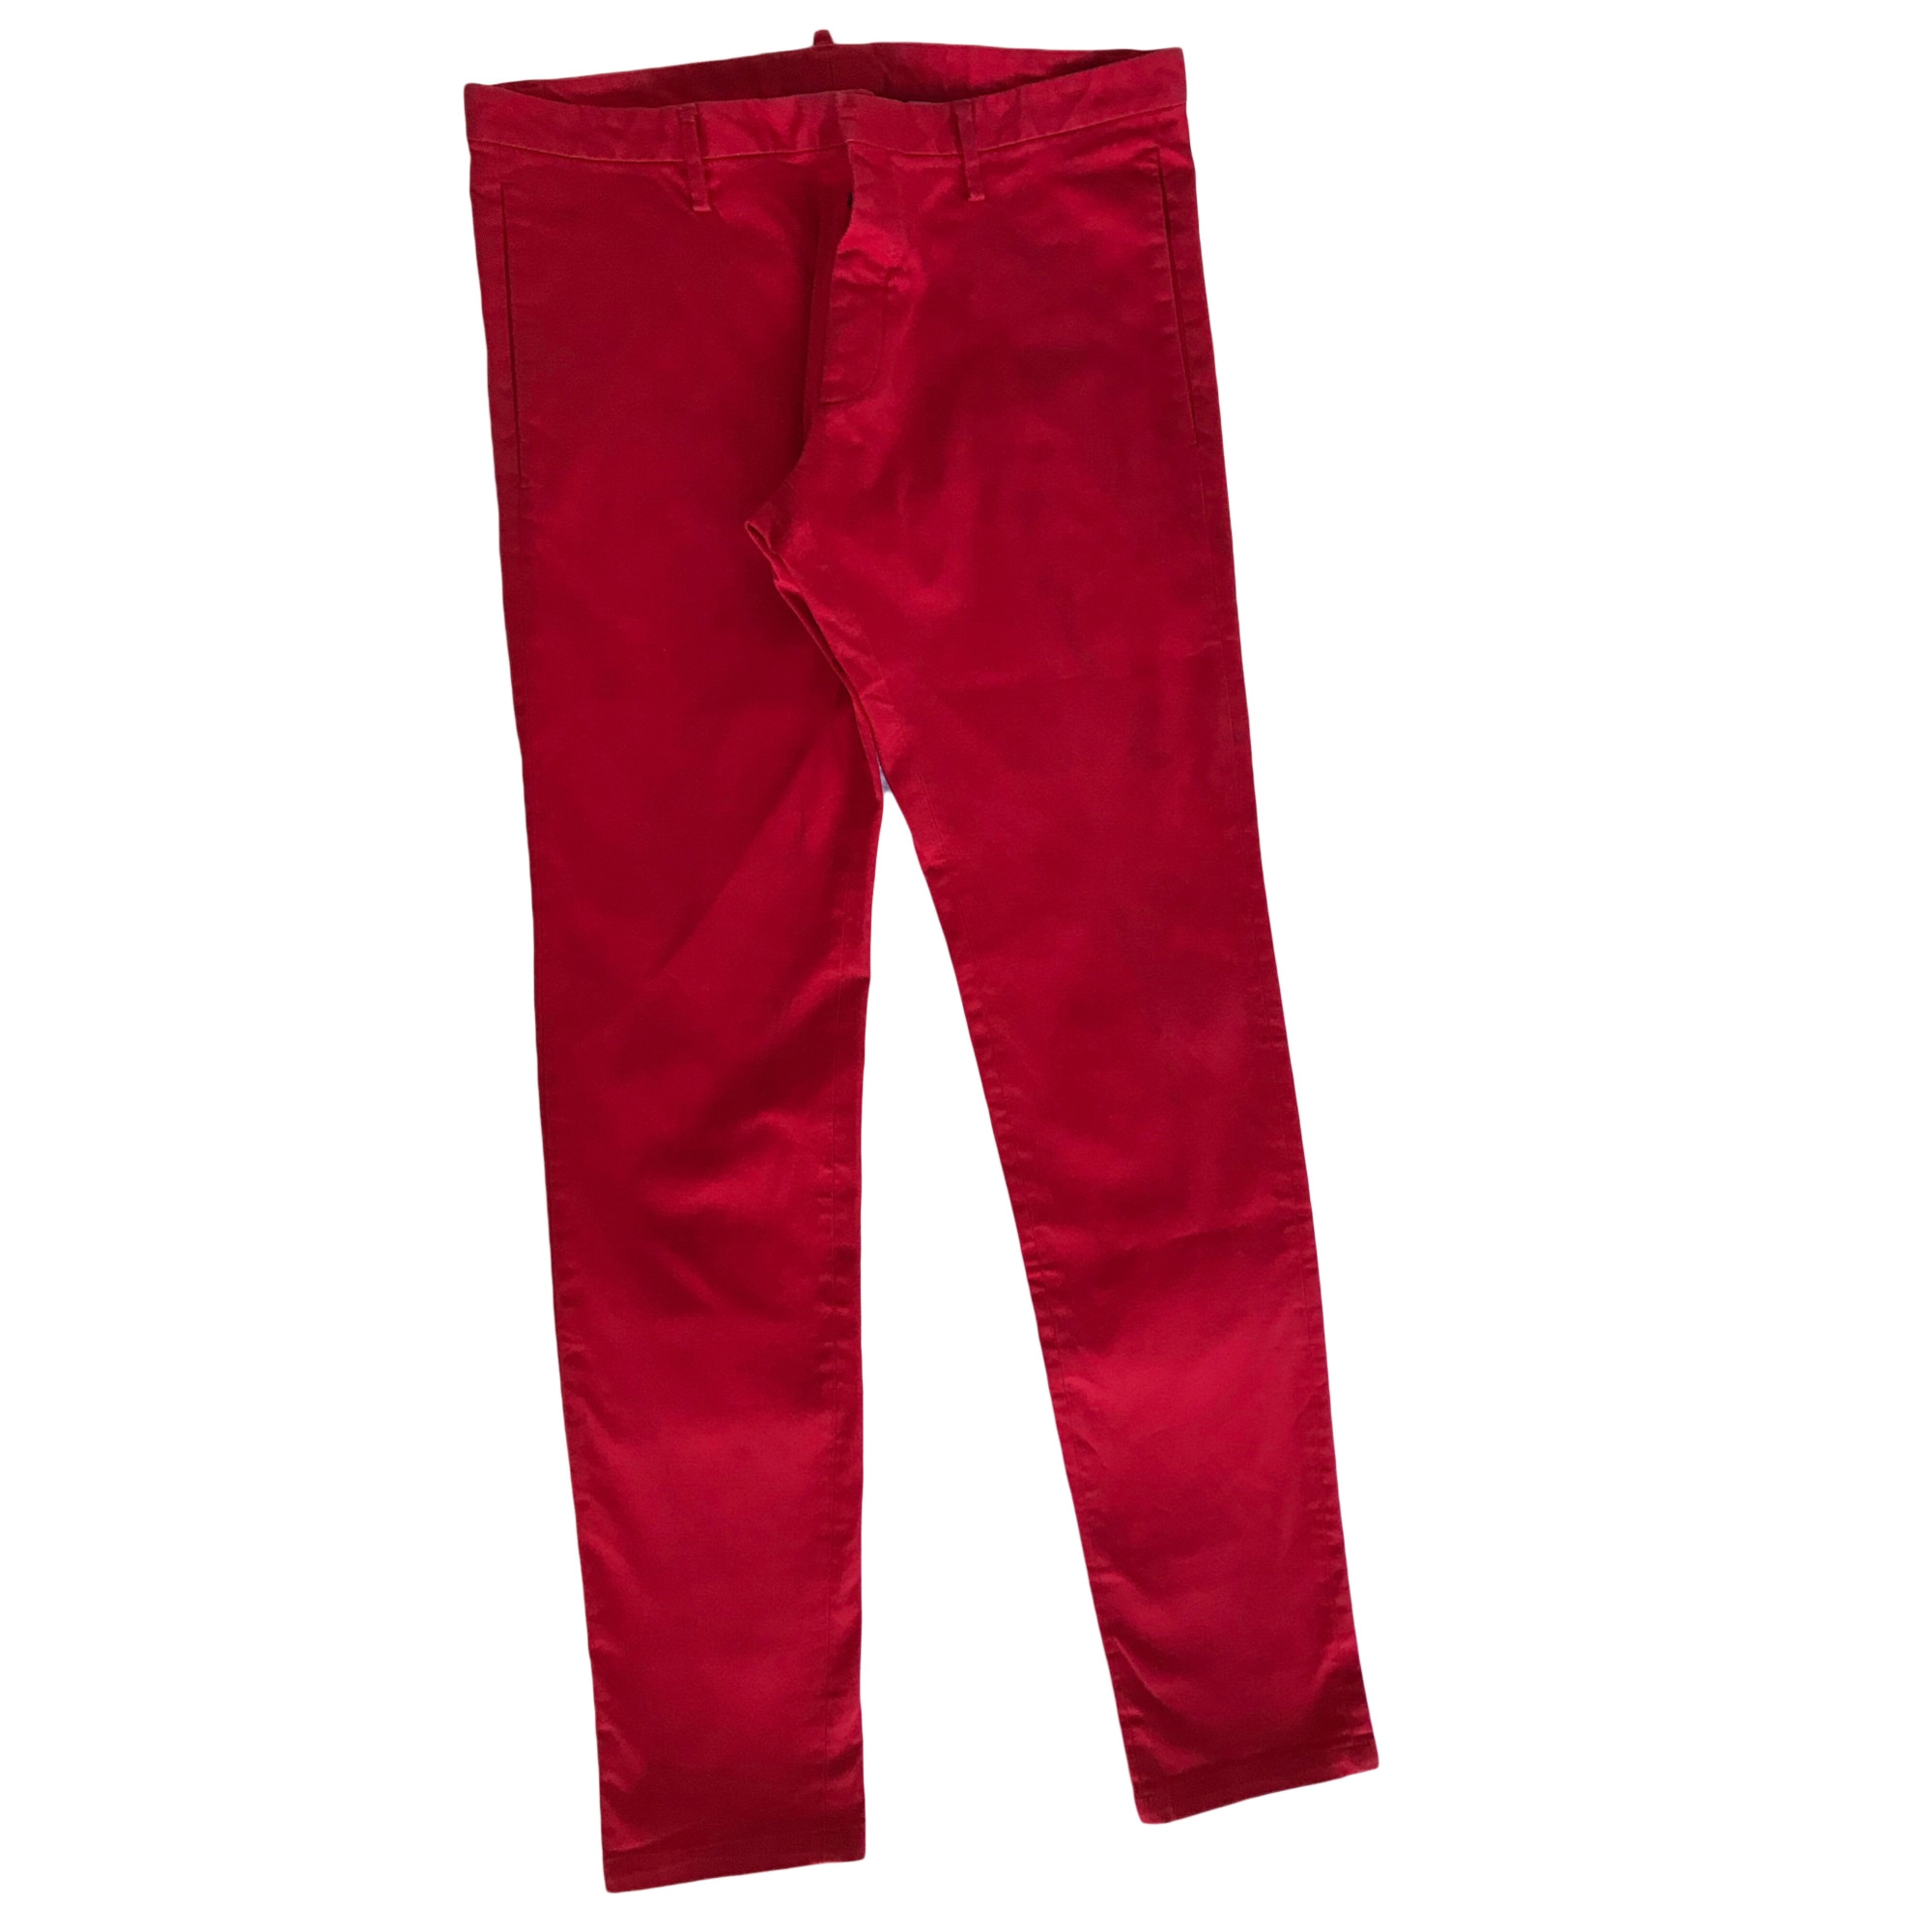 Skinny Jeans DSQUARED2 Red, burgundy